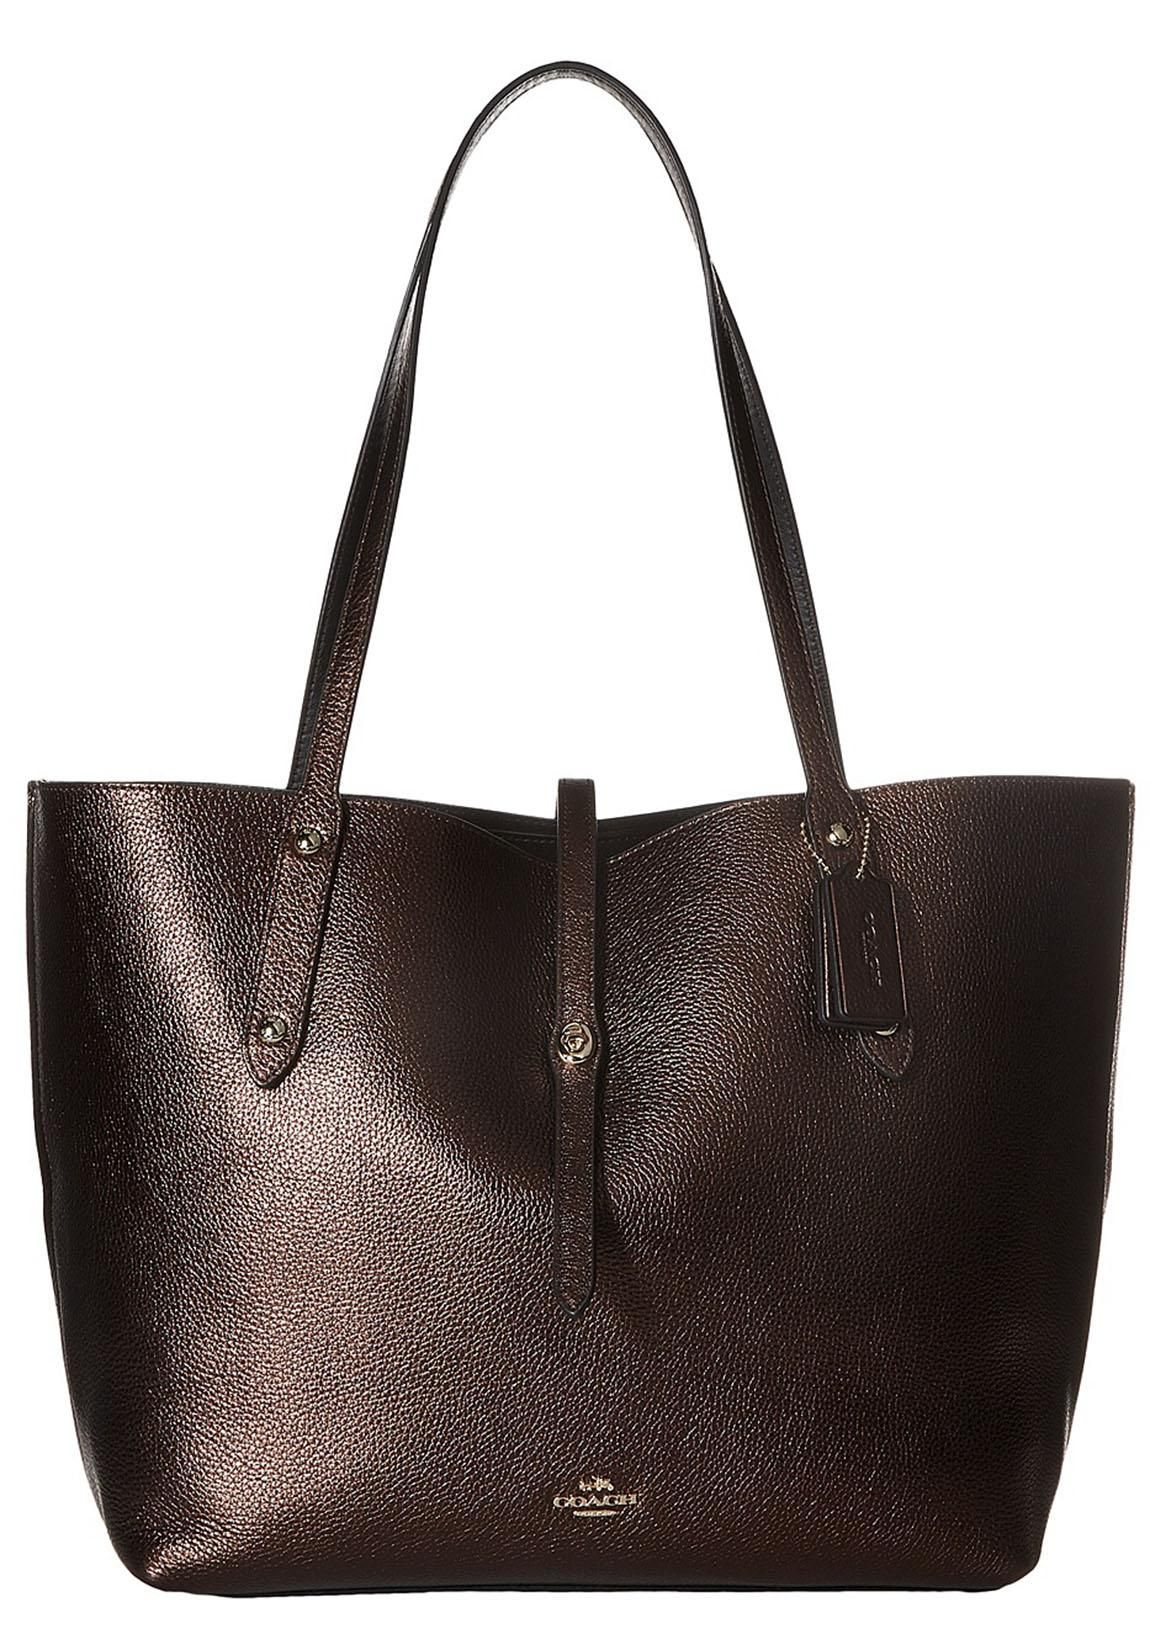 Get one of the hottest styles of the season! The Coach 37756 Pebbled  Leather Large Market Tote Shoulder Bag is a top 10 ... 34997c924e1ae